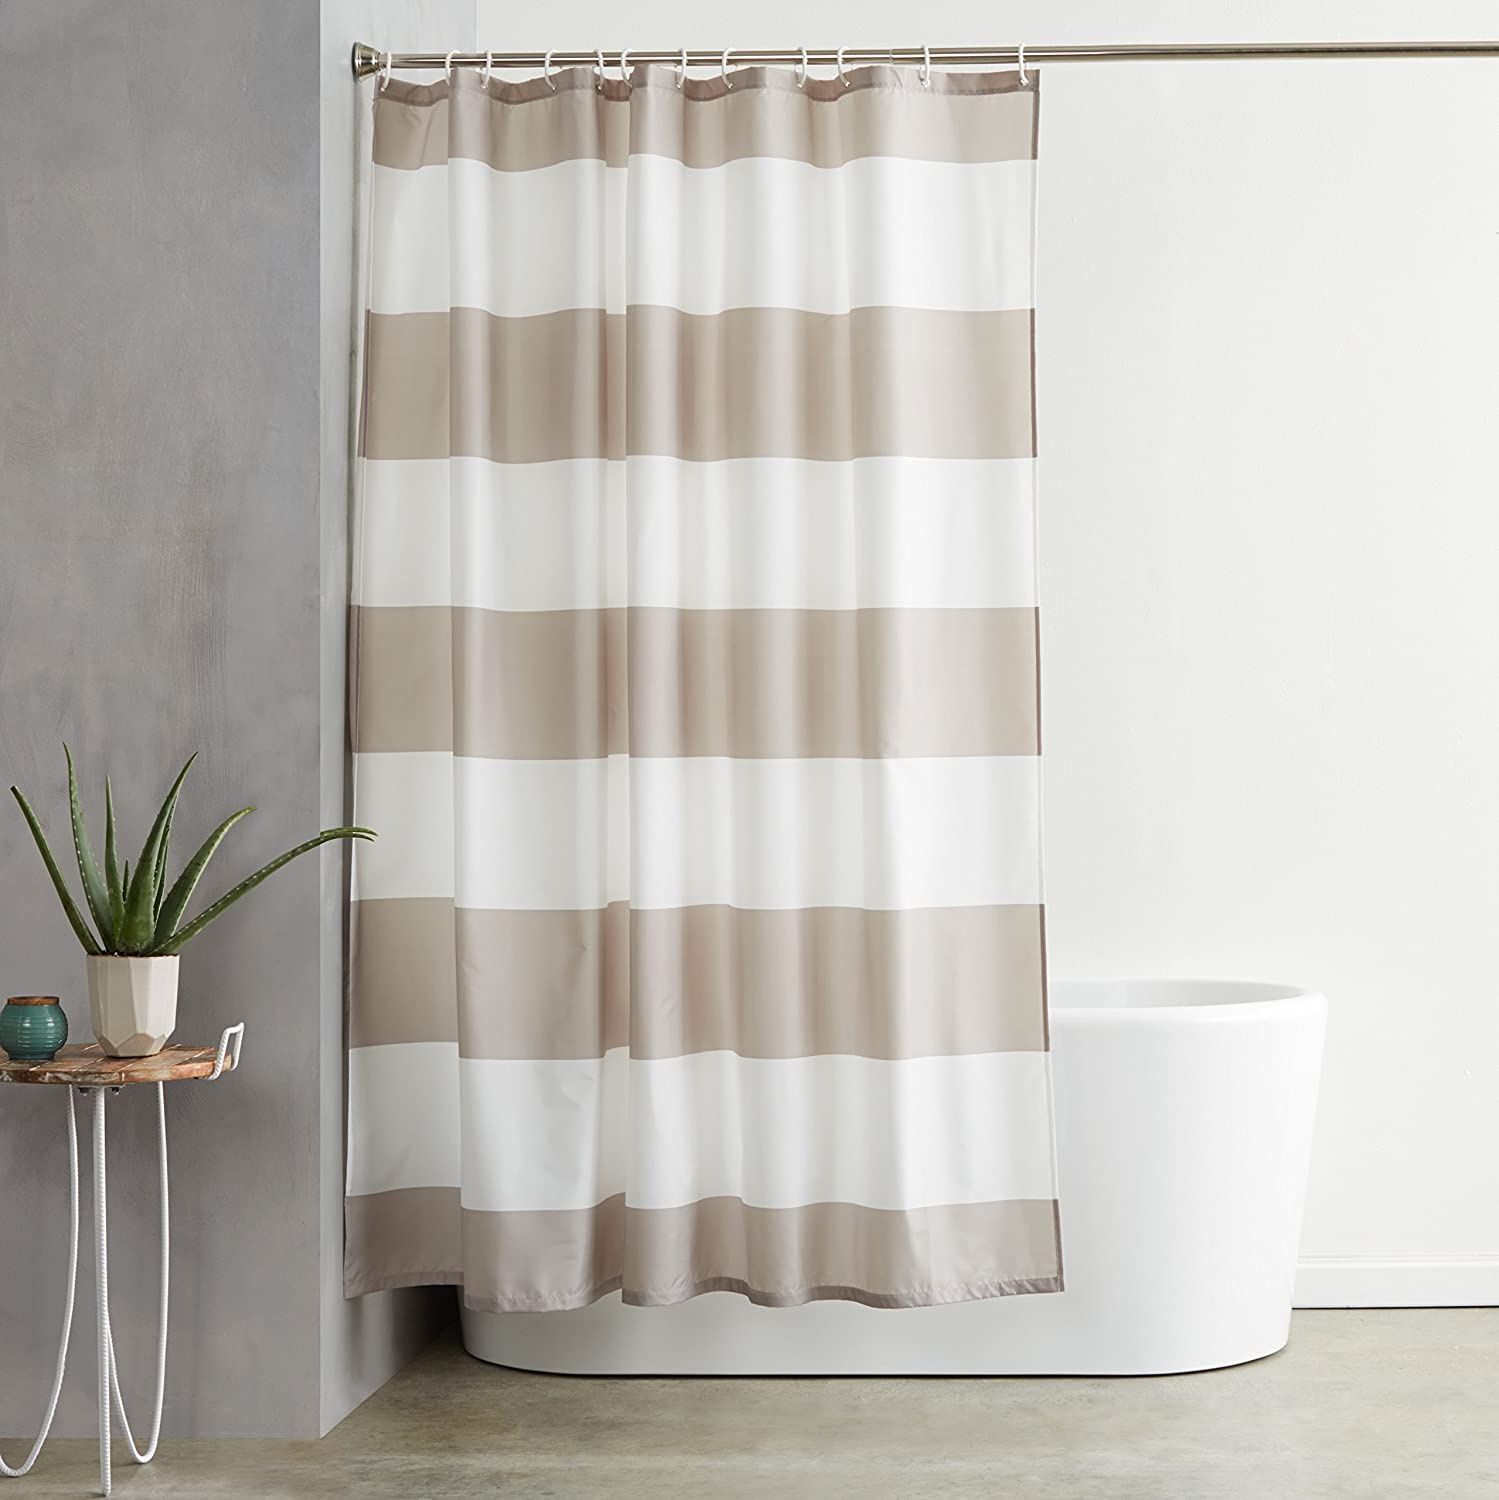 AmazonBasics Shower Curtain With Hooks (Treated To Resist Deterioration By  Mildew)   72 X 72 Inches, Grey Stripe